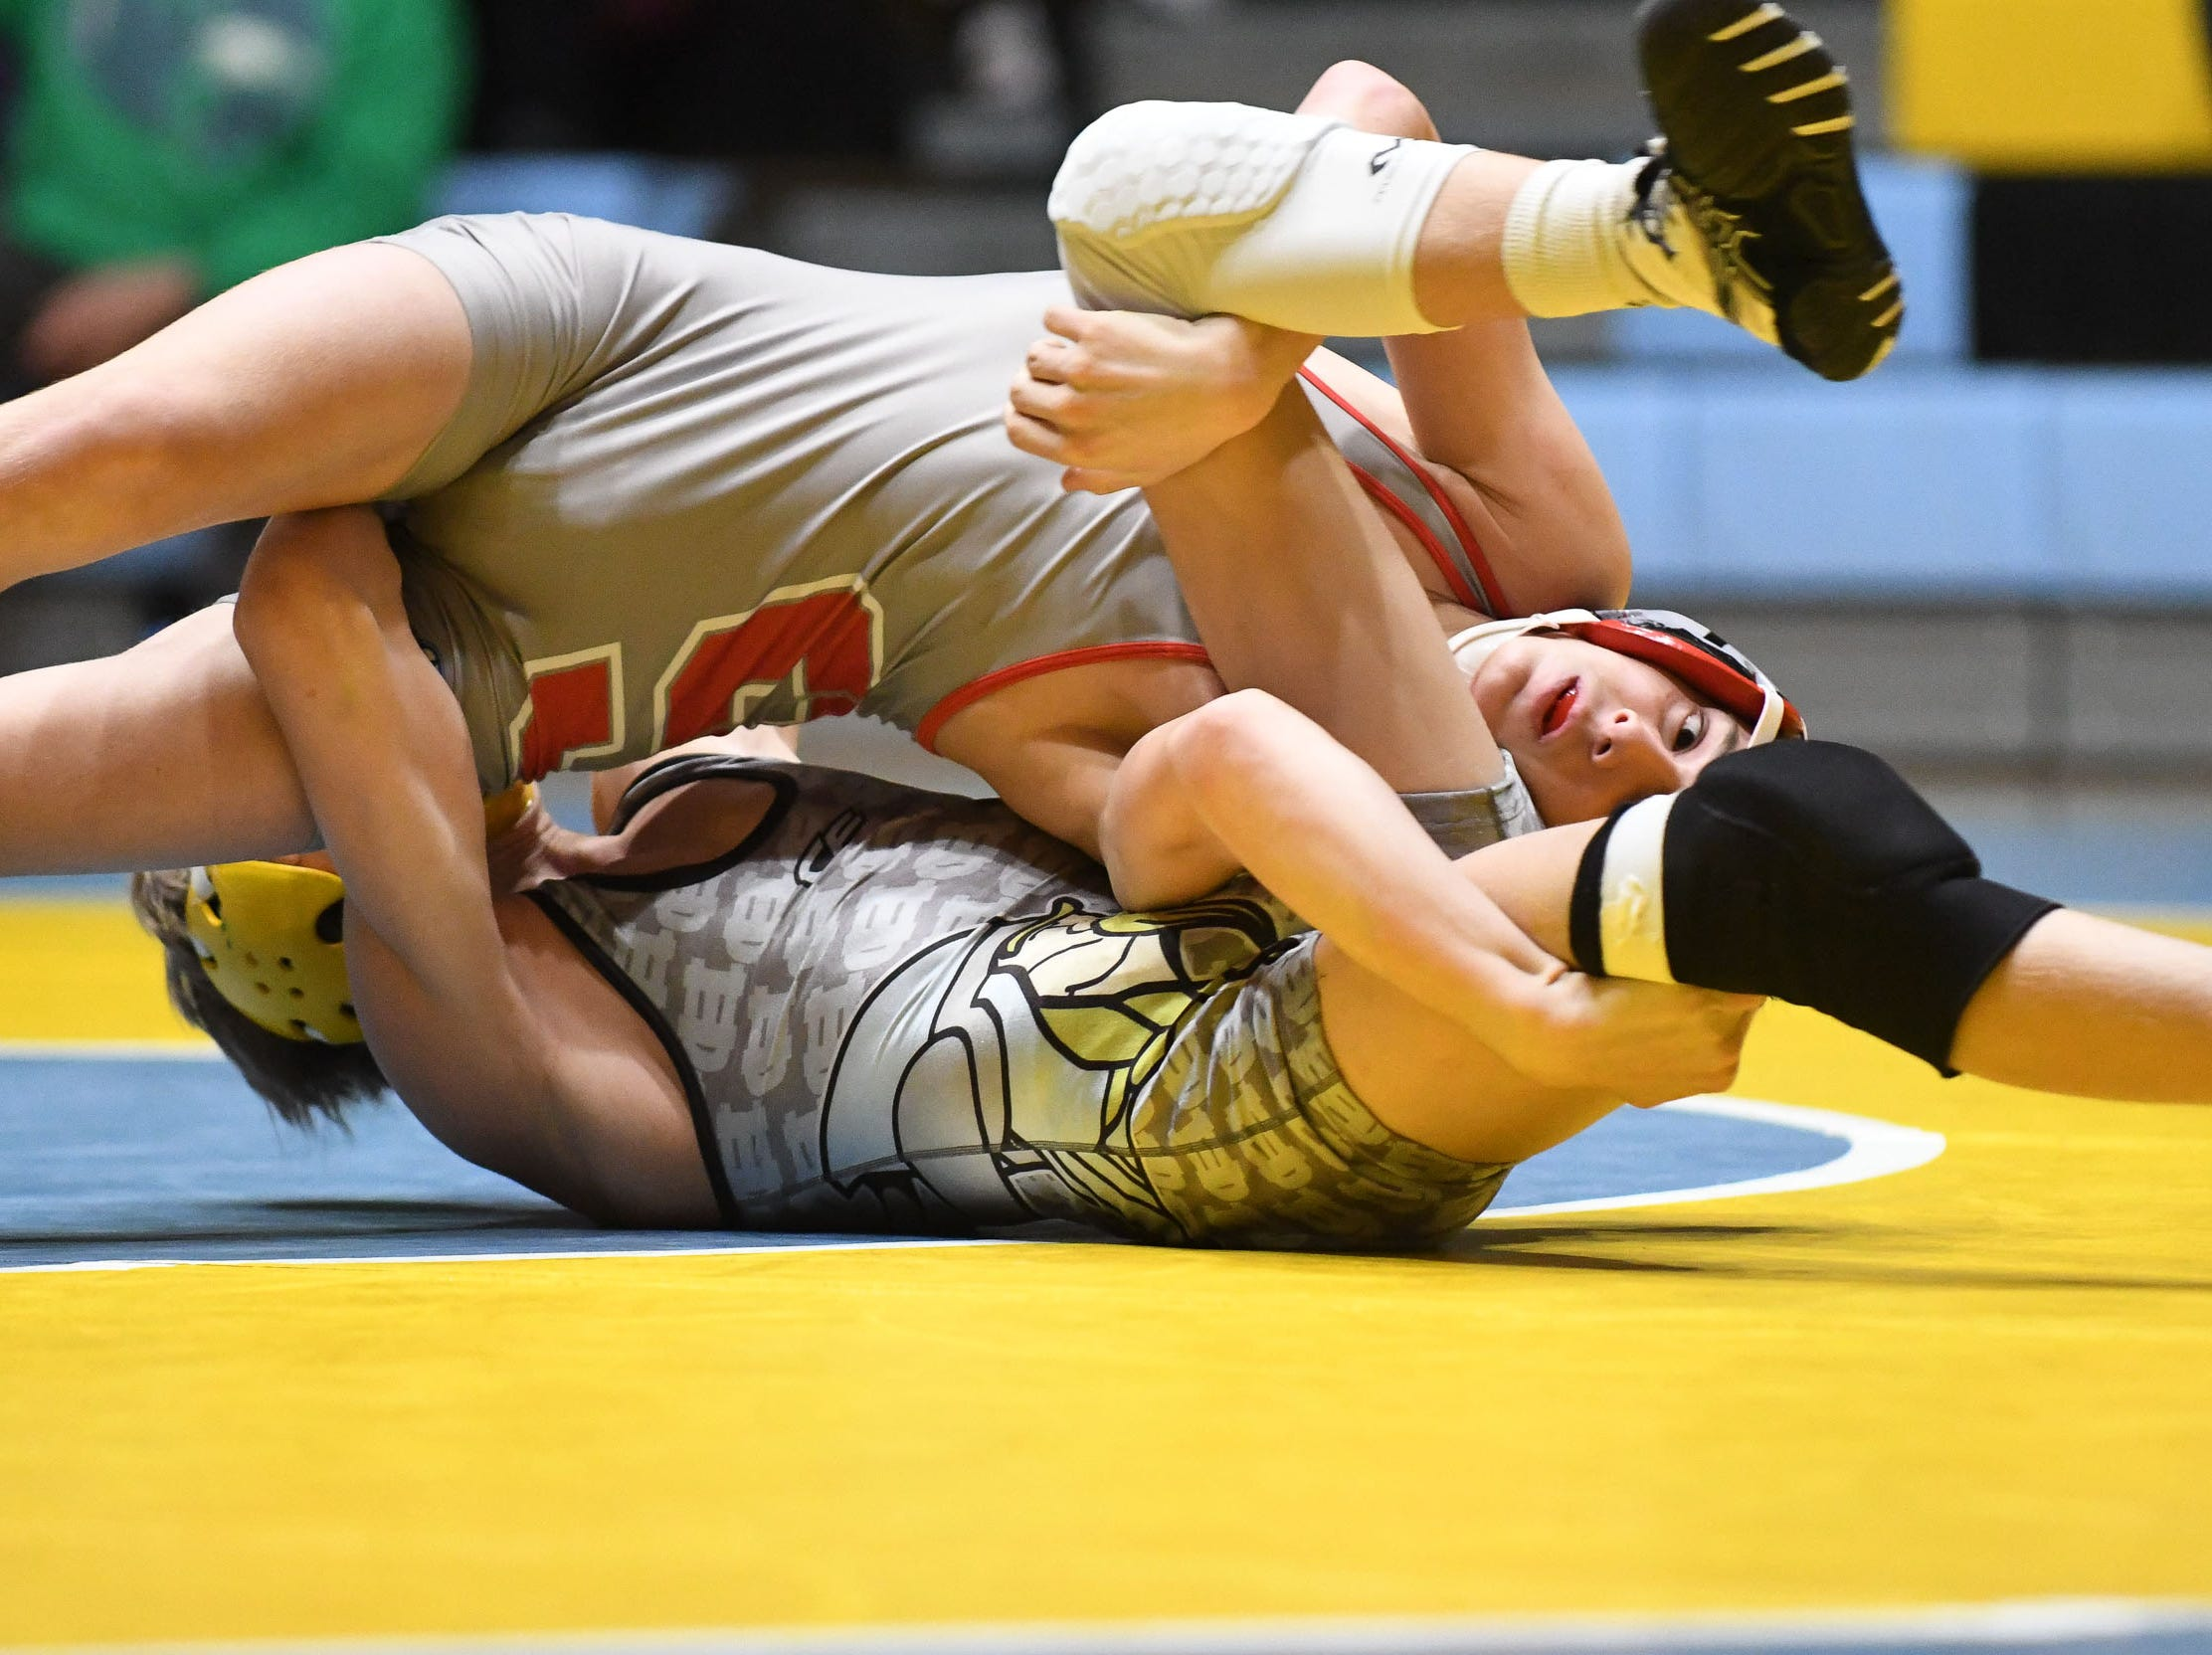 Cape's Carson Kammerer took on Smyrna's Derek Davis during the 120lb weight class on Wednesday, Jan. 10, 2019. Cape won the match 34-33.